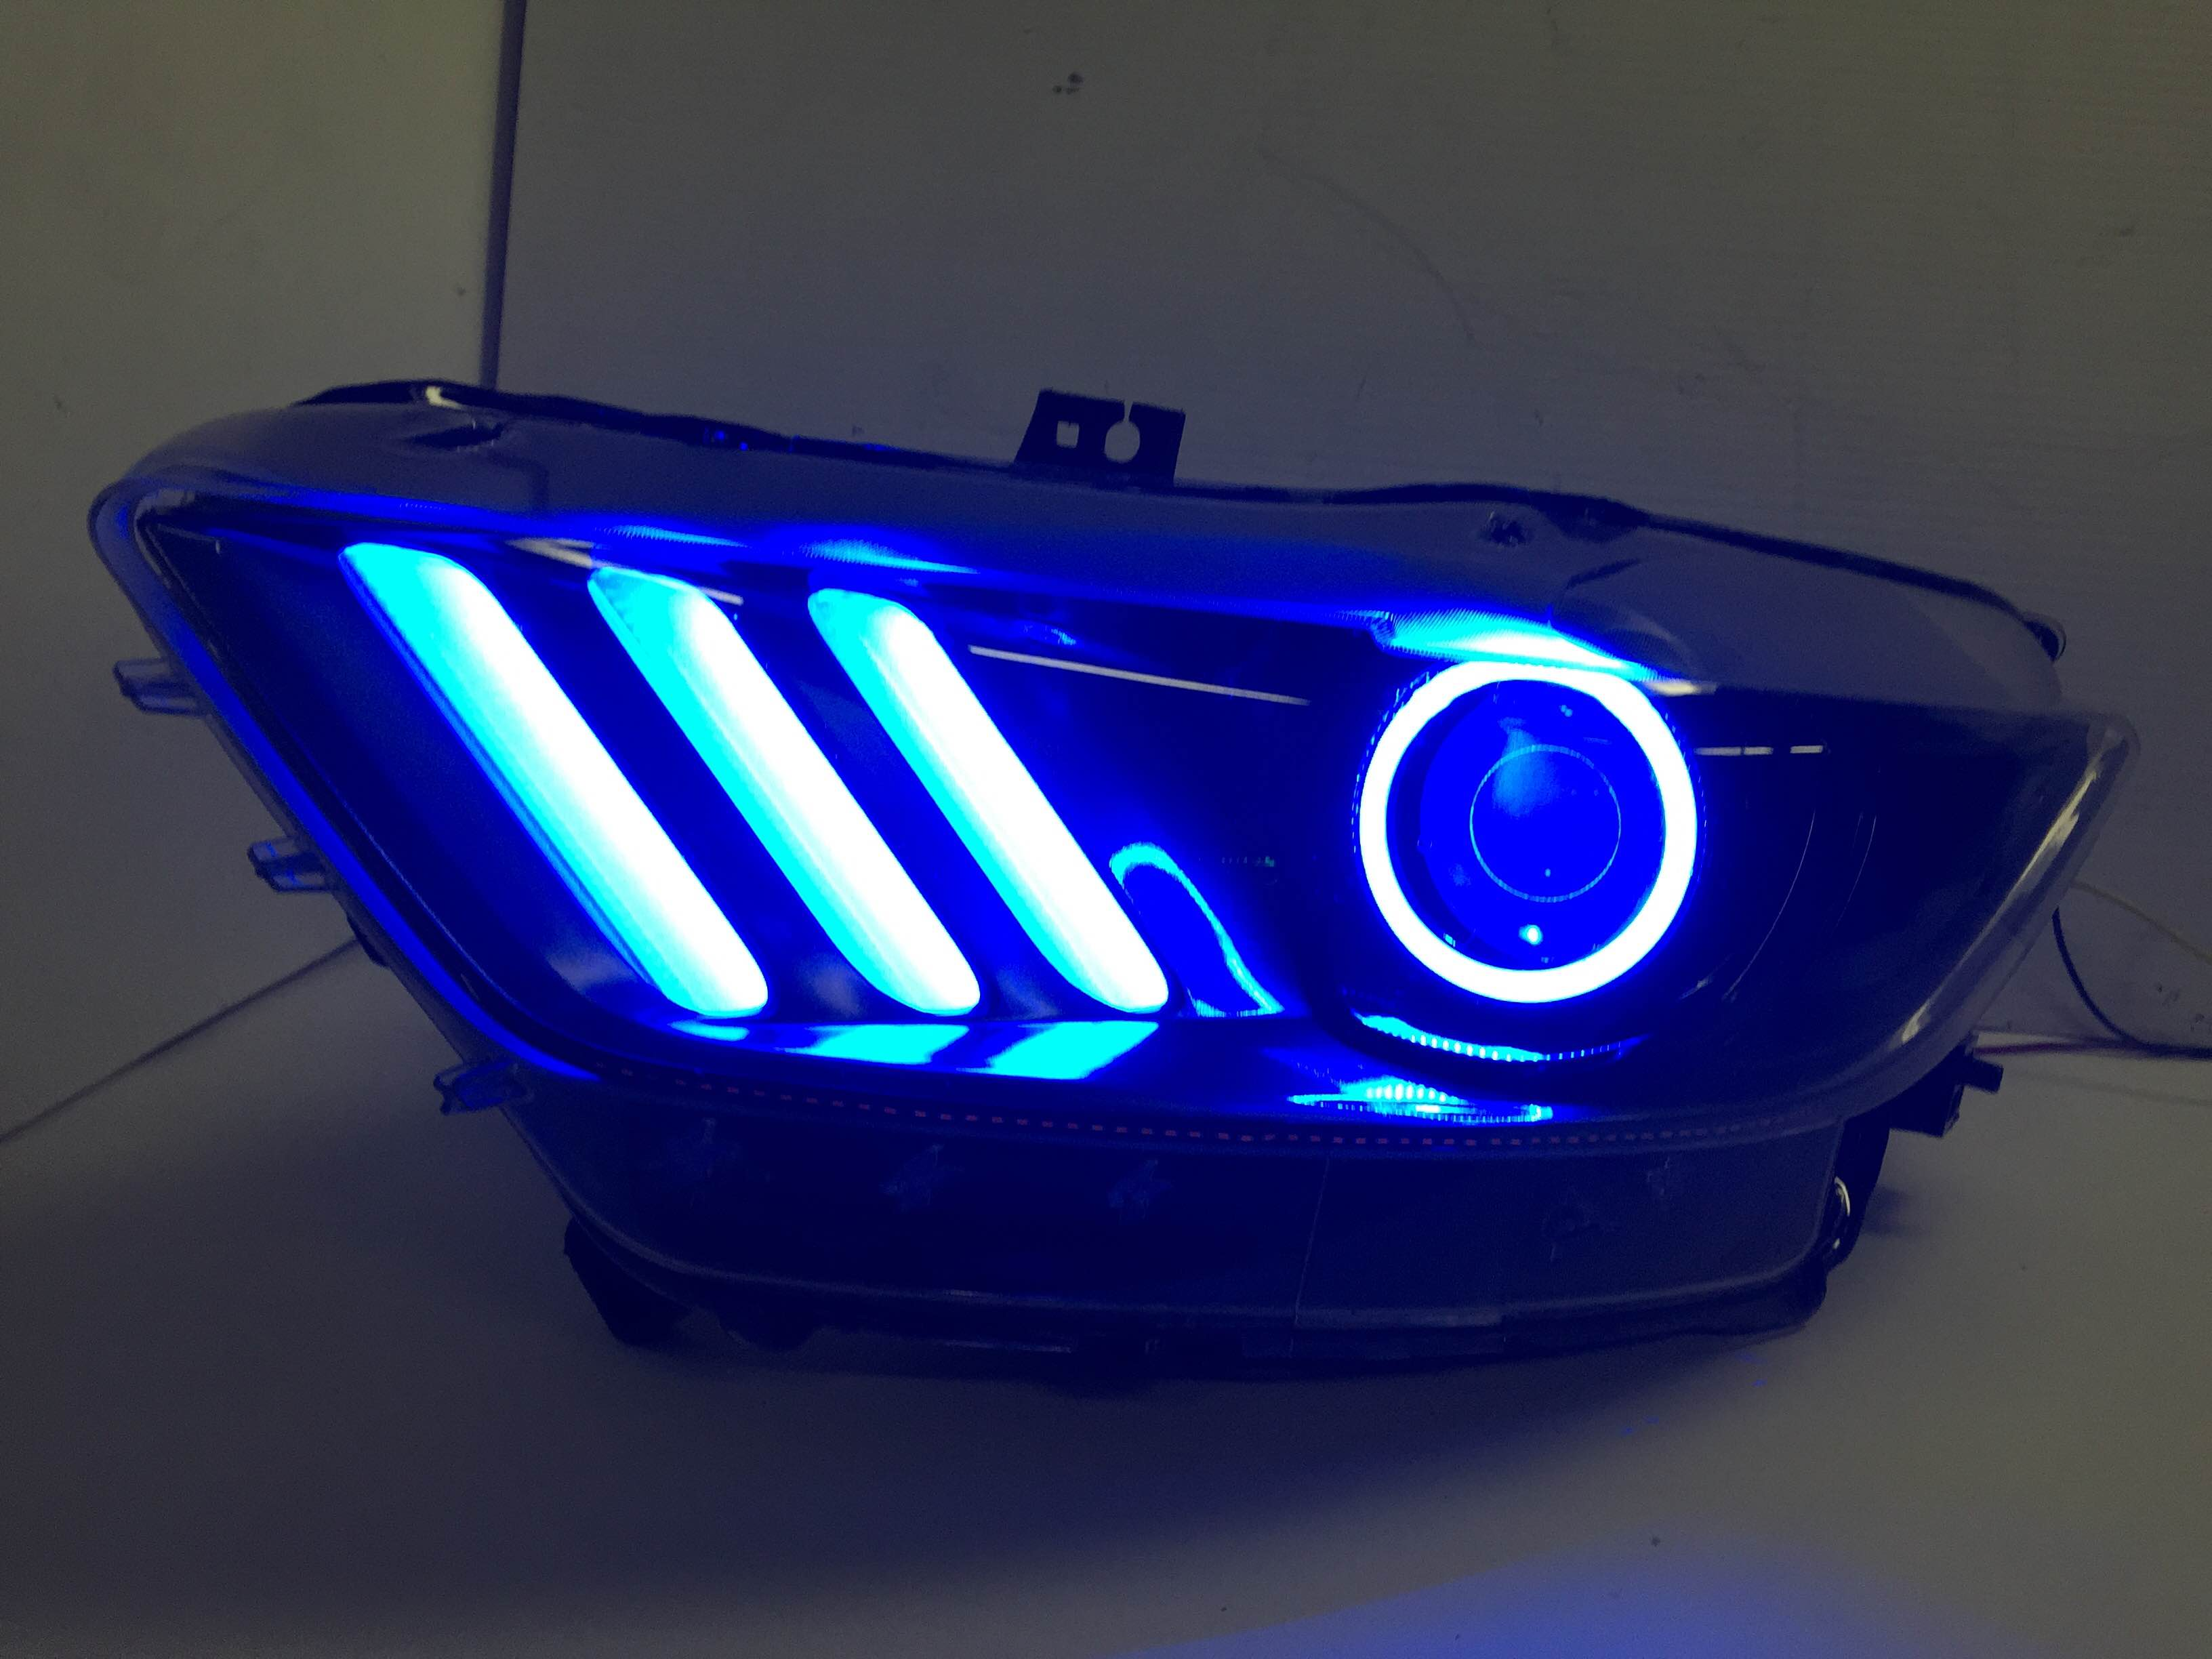 Bmw E46 D2s Xenon Replacement Bulb additionally 2002 Bmw Electric Window Conversion Kit moreover Headlight Fyrlyt additionally 0814 Subaru Wrx Sti D51 Retrofit Headlights Custom Series P 20320 as well 236030 2002 S430 Facelift Other Mods. on hid headlights